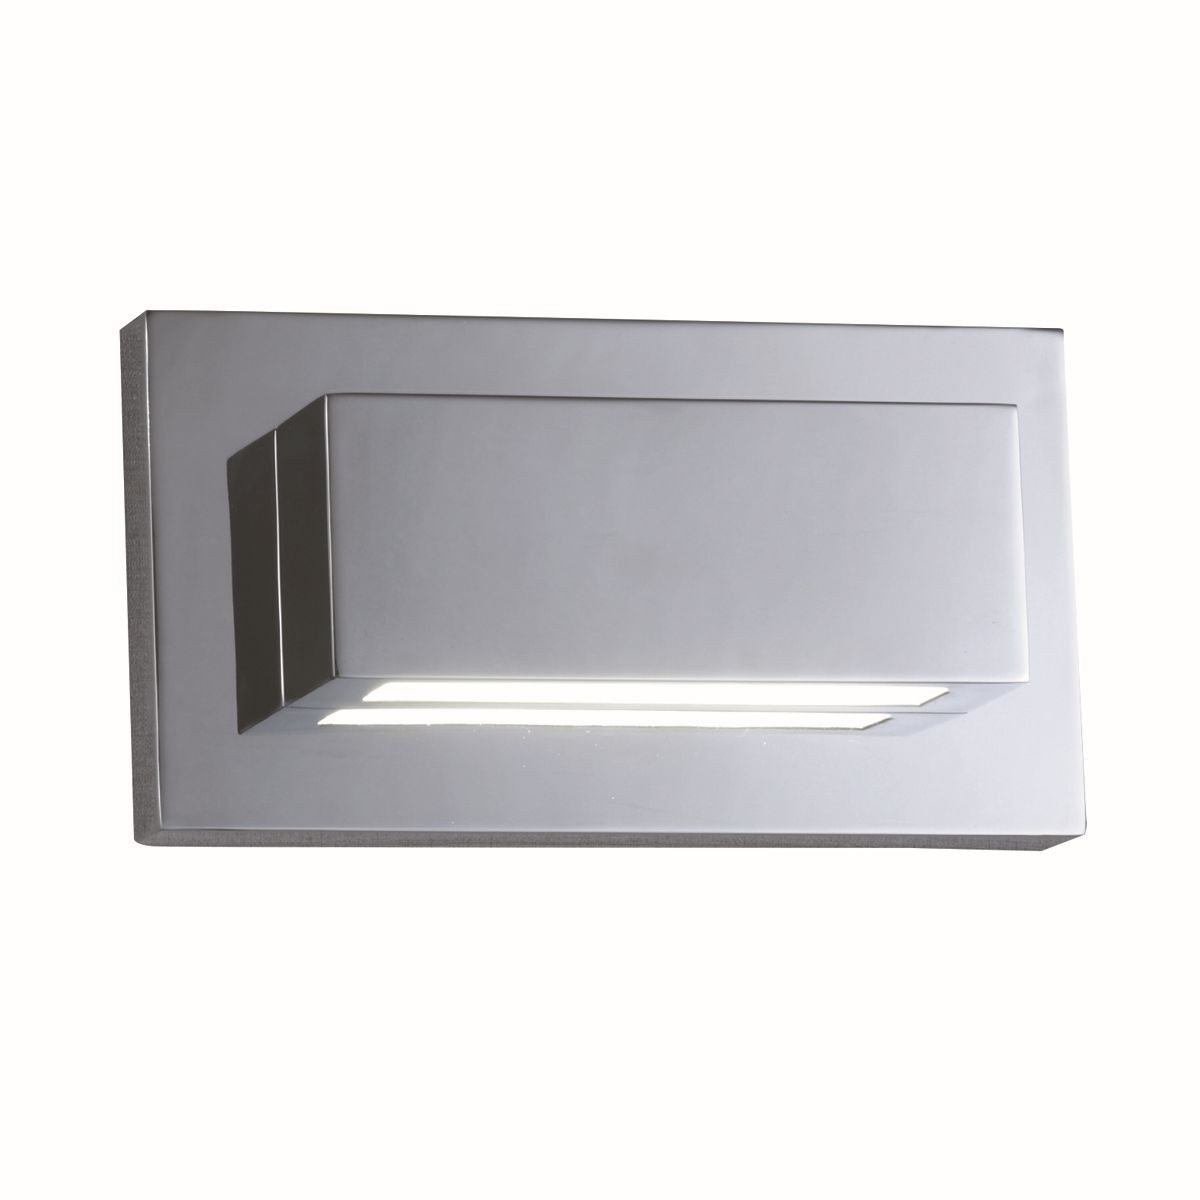 led modern wall light chrome with polycarbonate lens. Black Bedroom Furniture Sets. Home Design Ideas